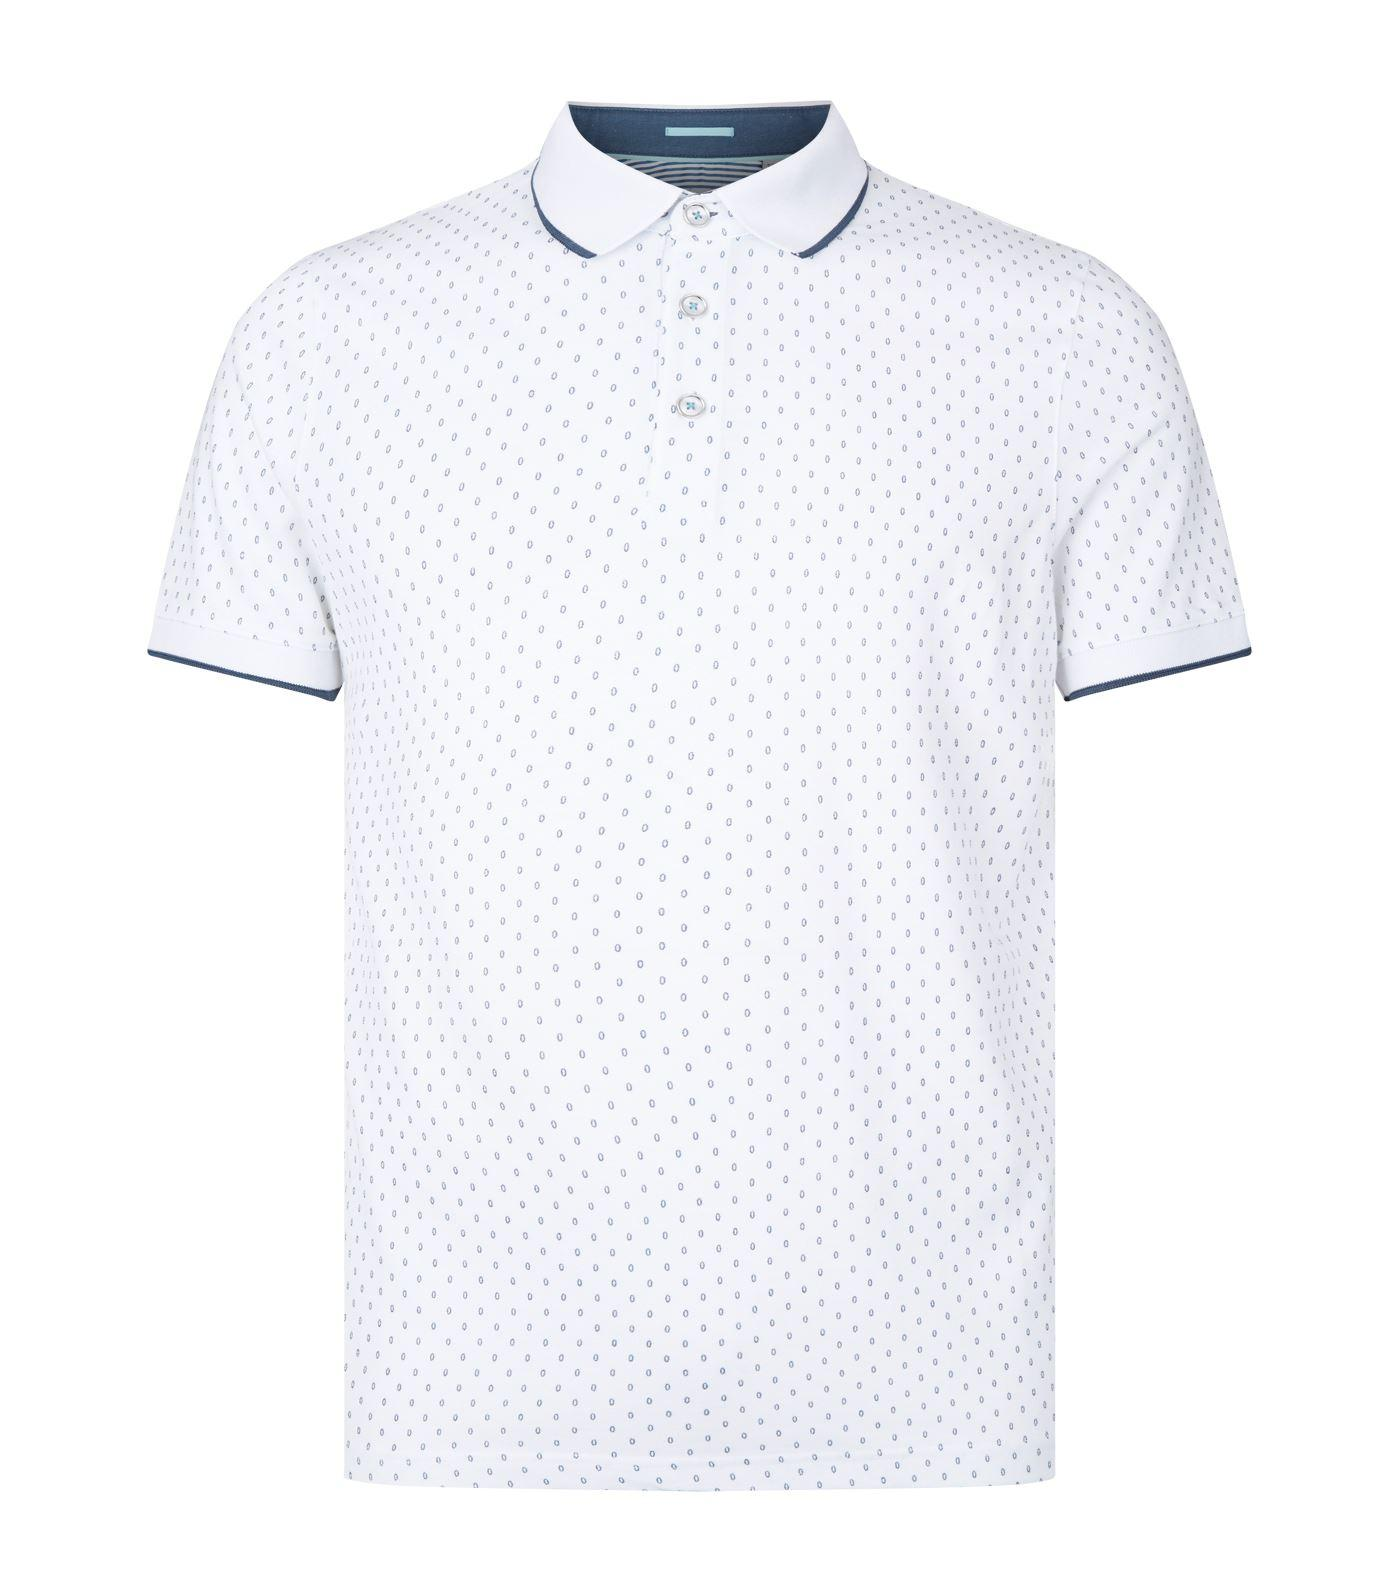 ce30d1ffe Ted Baker Toff Print Polo Shirt in White for Men - Lyst